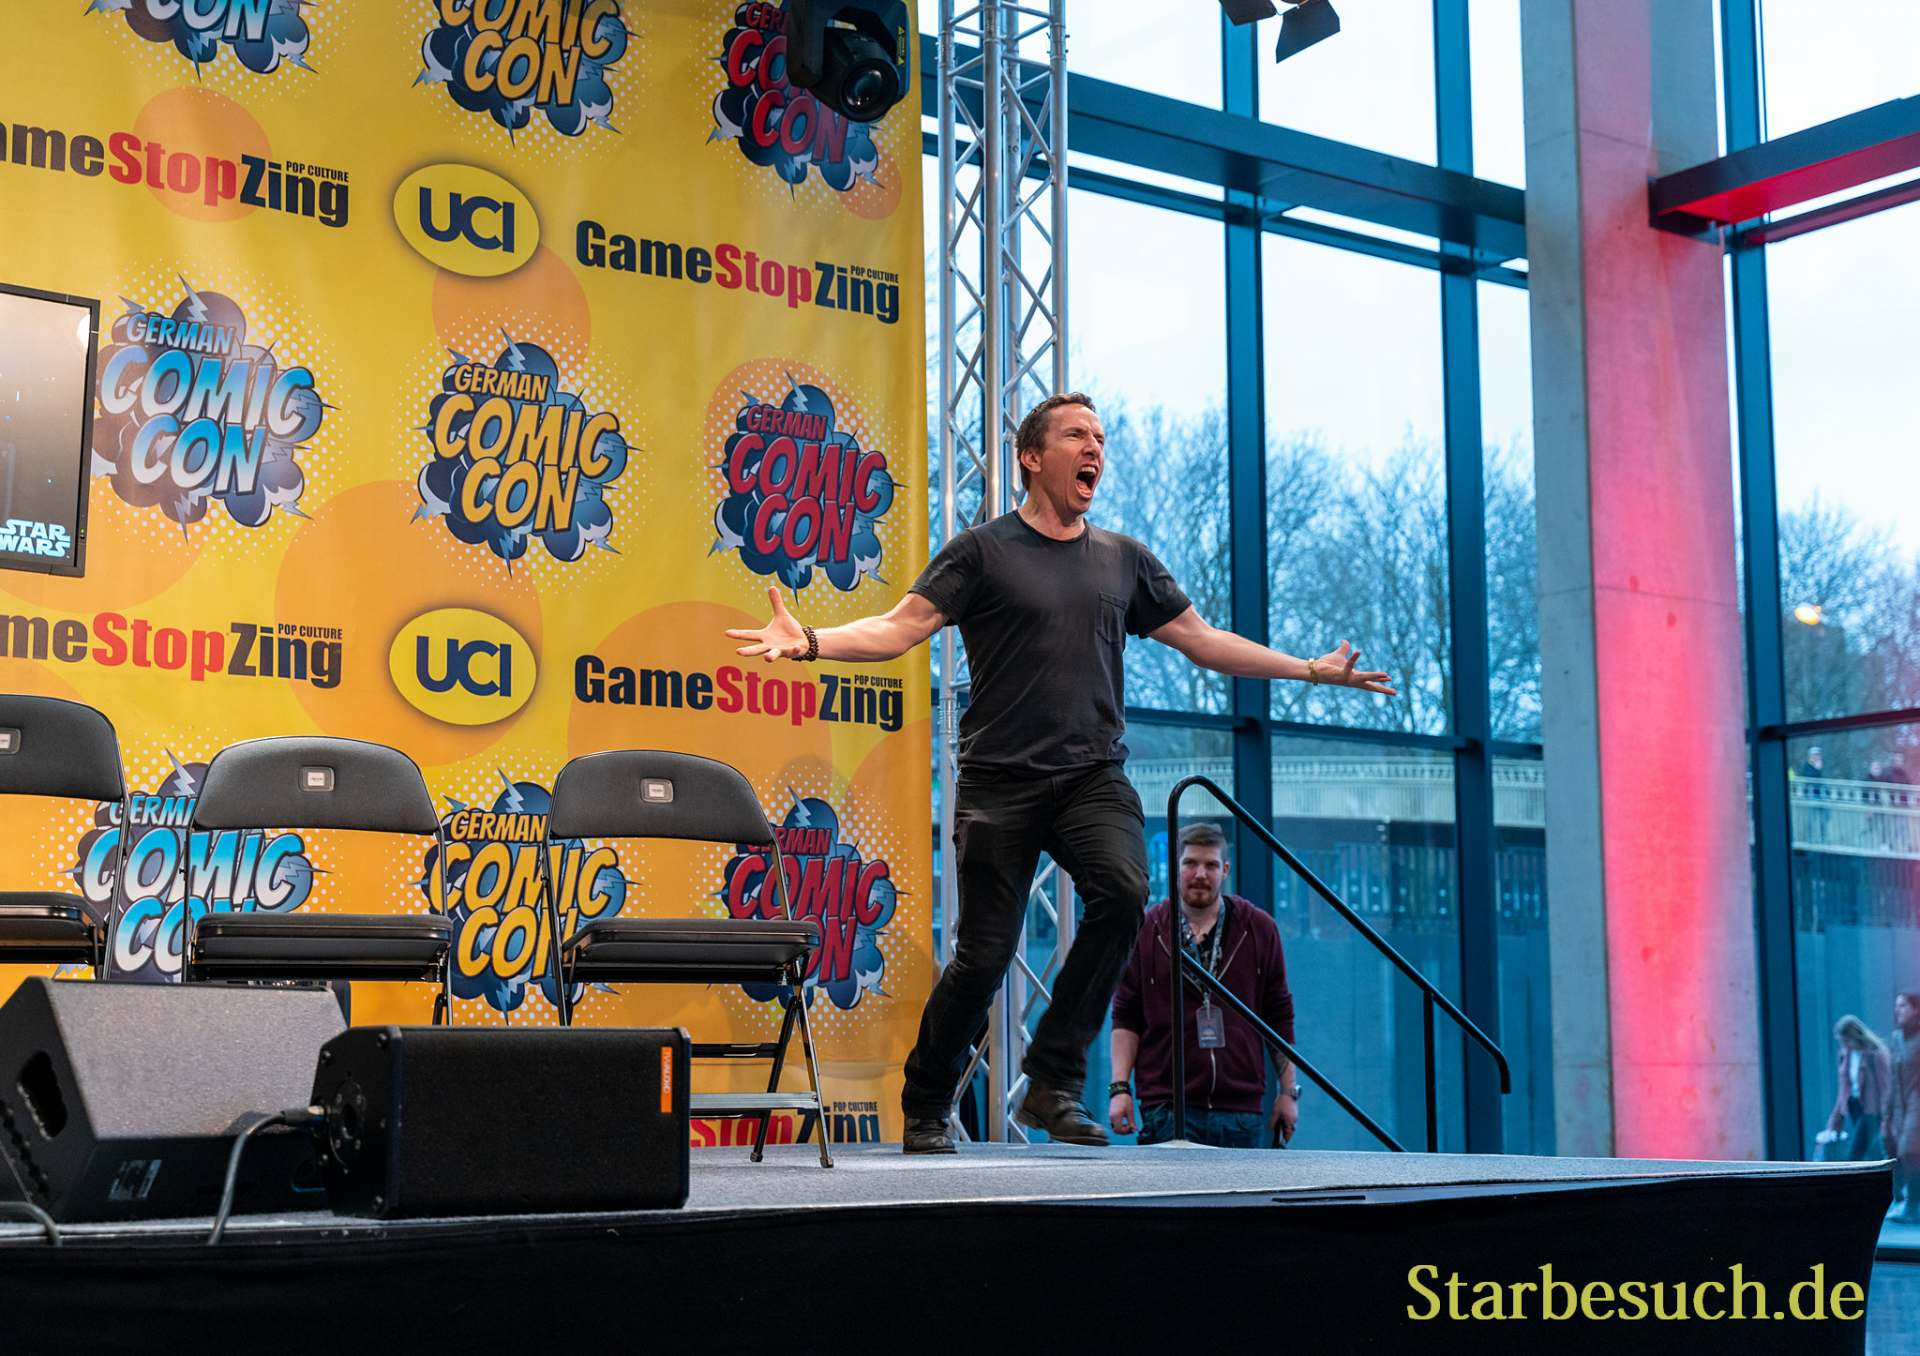 DORTMUND, GERMANY - December 7th 2019: Michael Traynor at German Comic Con Dortmund